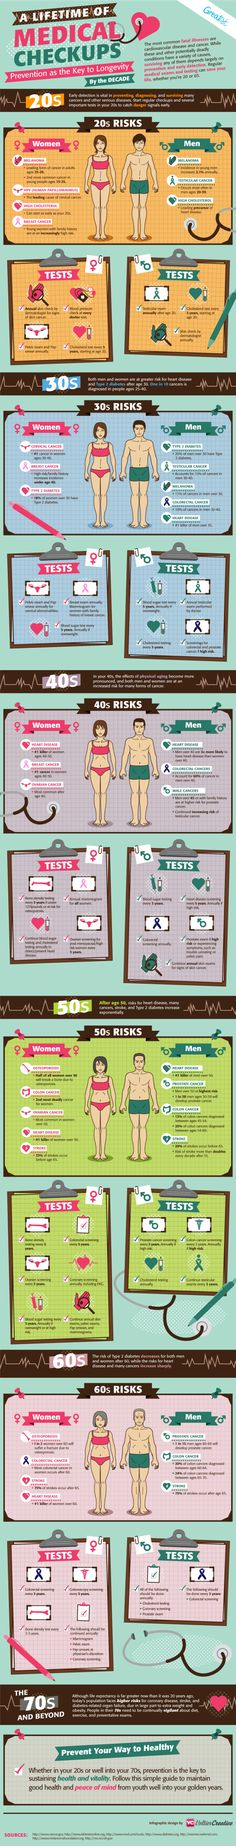 A Lifetime of Medical Checkups #infographic